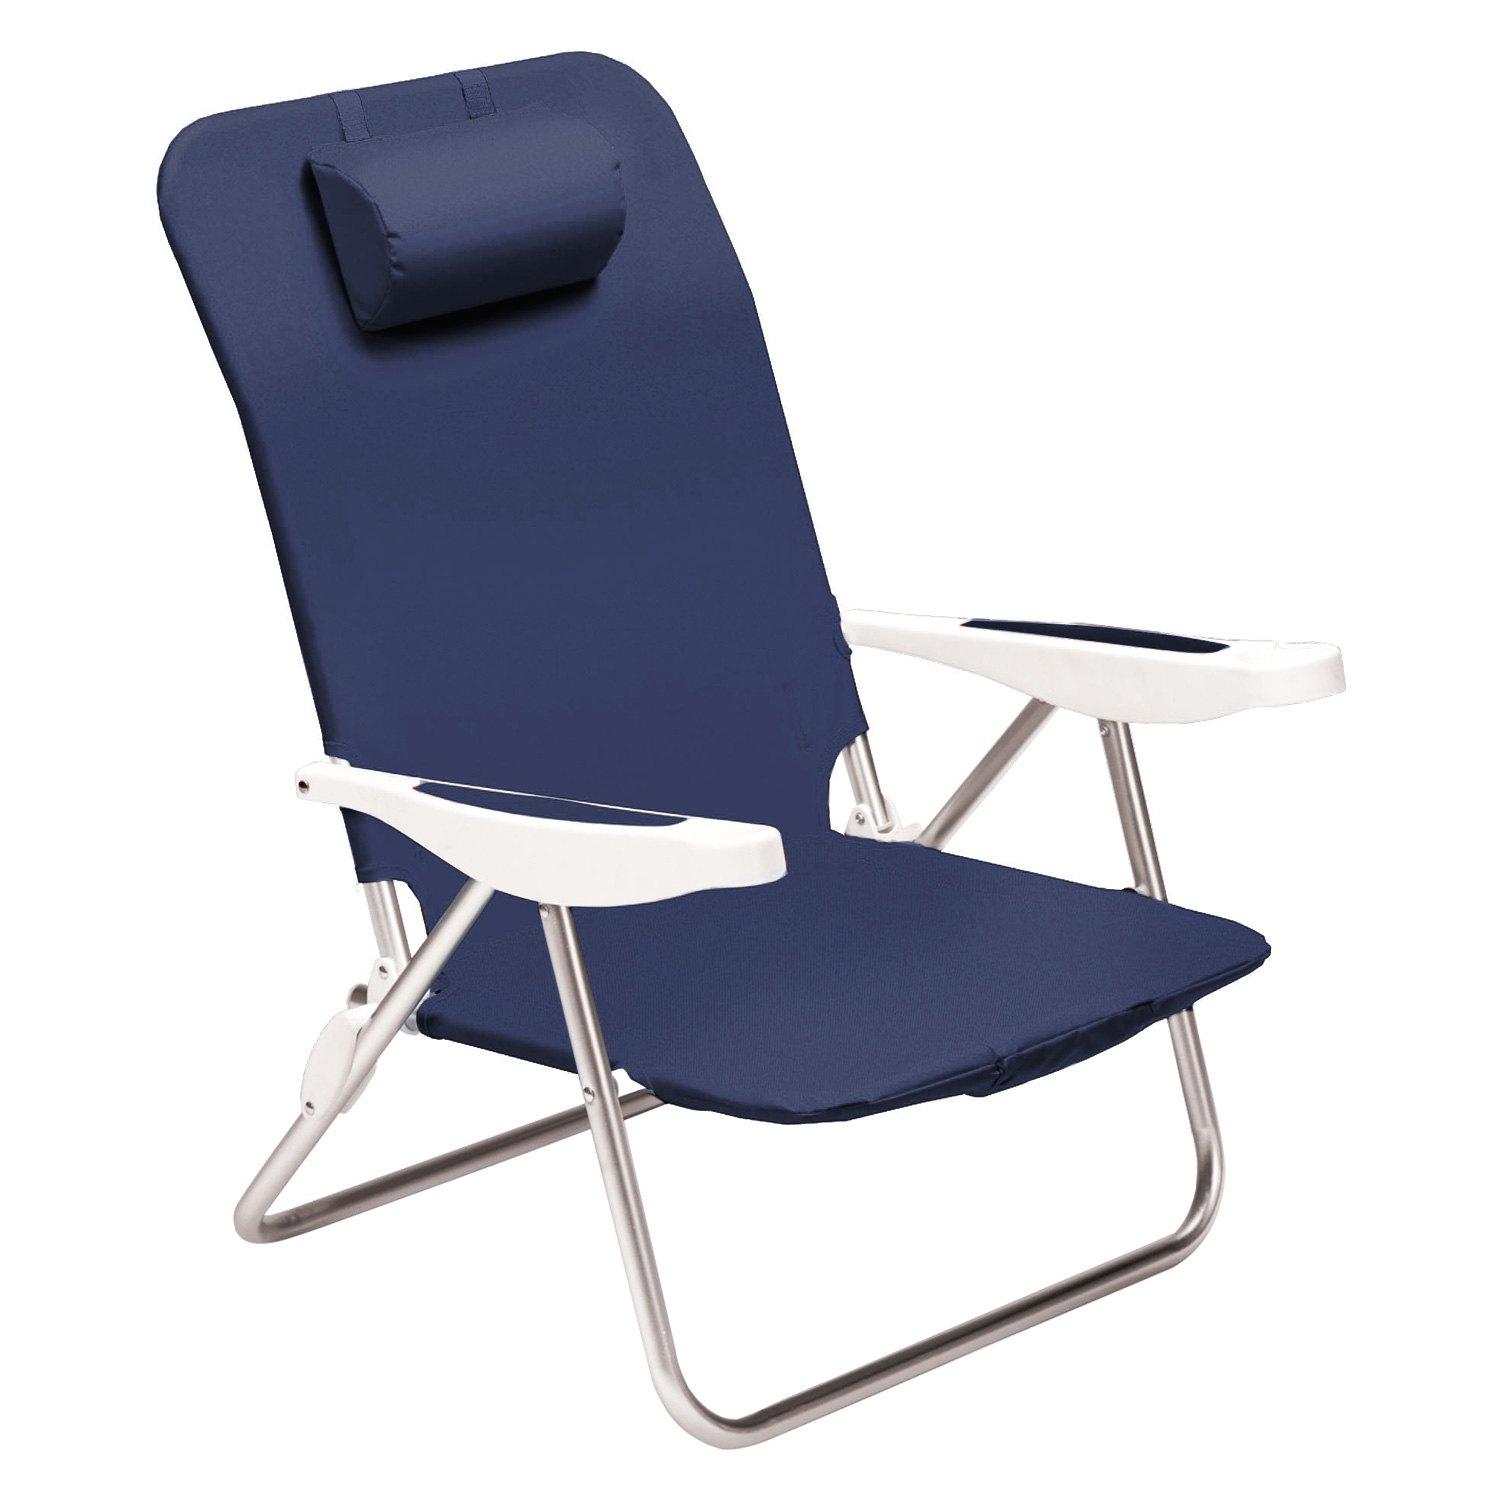 picnic time chair parts cheap covers bulk 790 00 138 504 pittsburgh panthers monaco